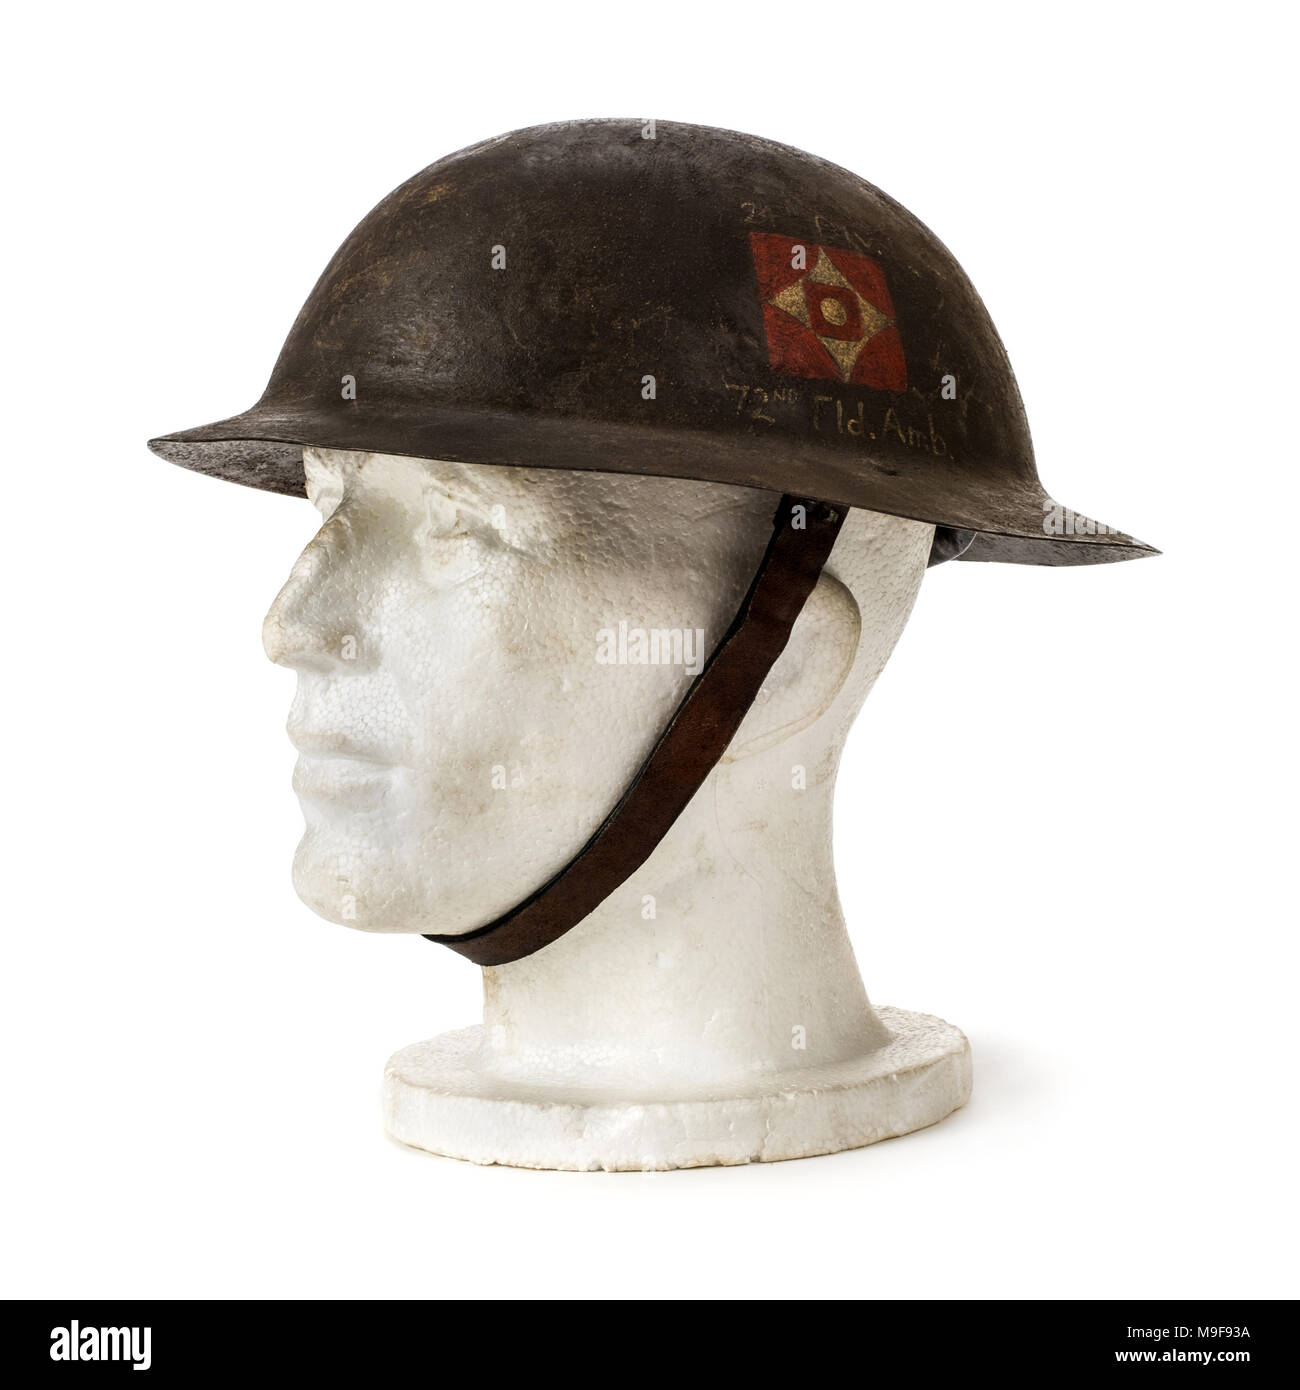 British WW1 'Type A' Brodie medic helmet with decals of the 72nd Field Ambulance, 24th Division. - Stock Image